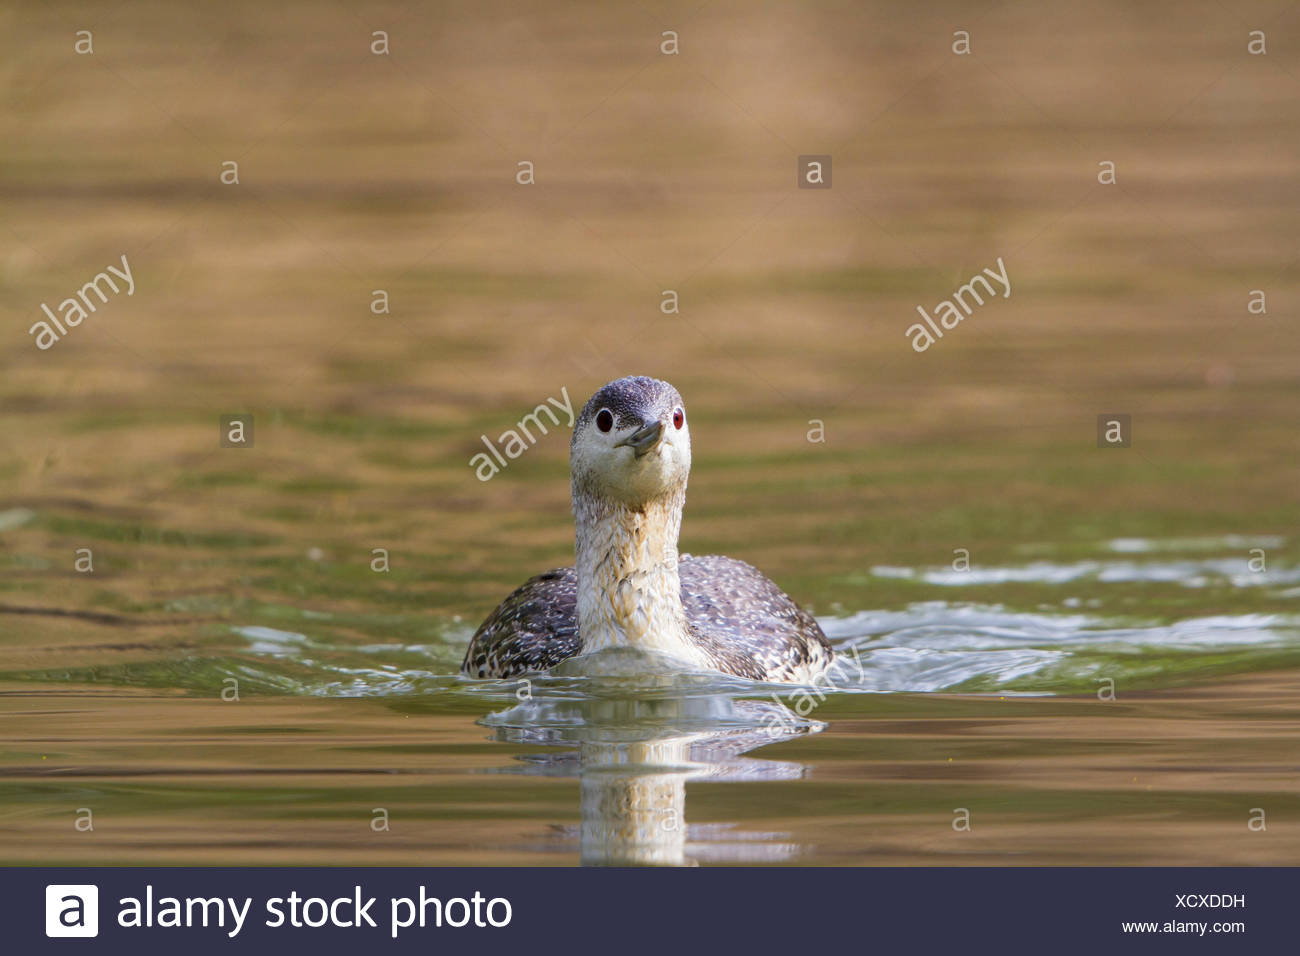 red-throated diver (Gavia stellata), swimming on a lake, Switzerland, Lake Constance - Stock Image